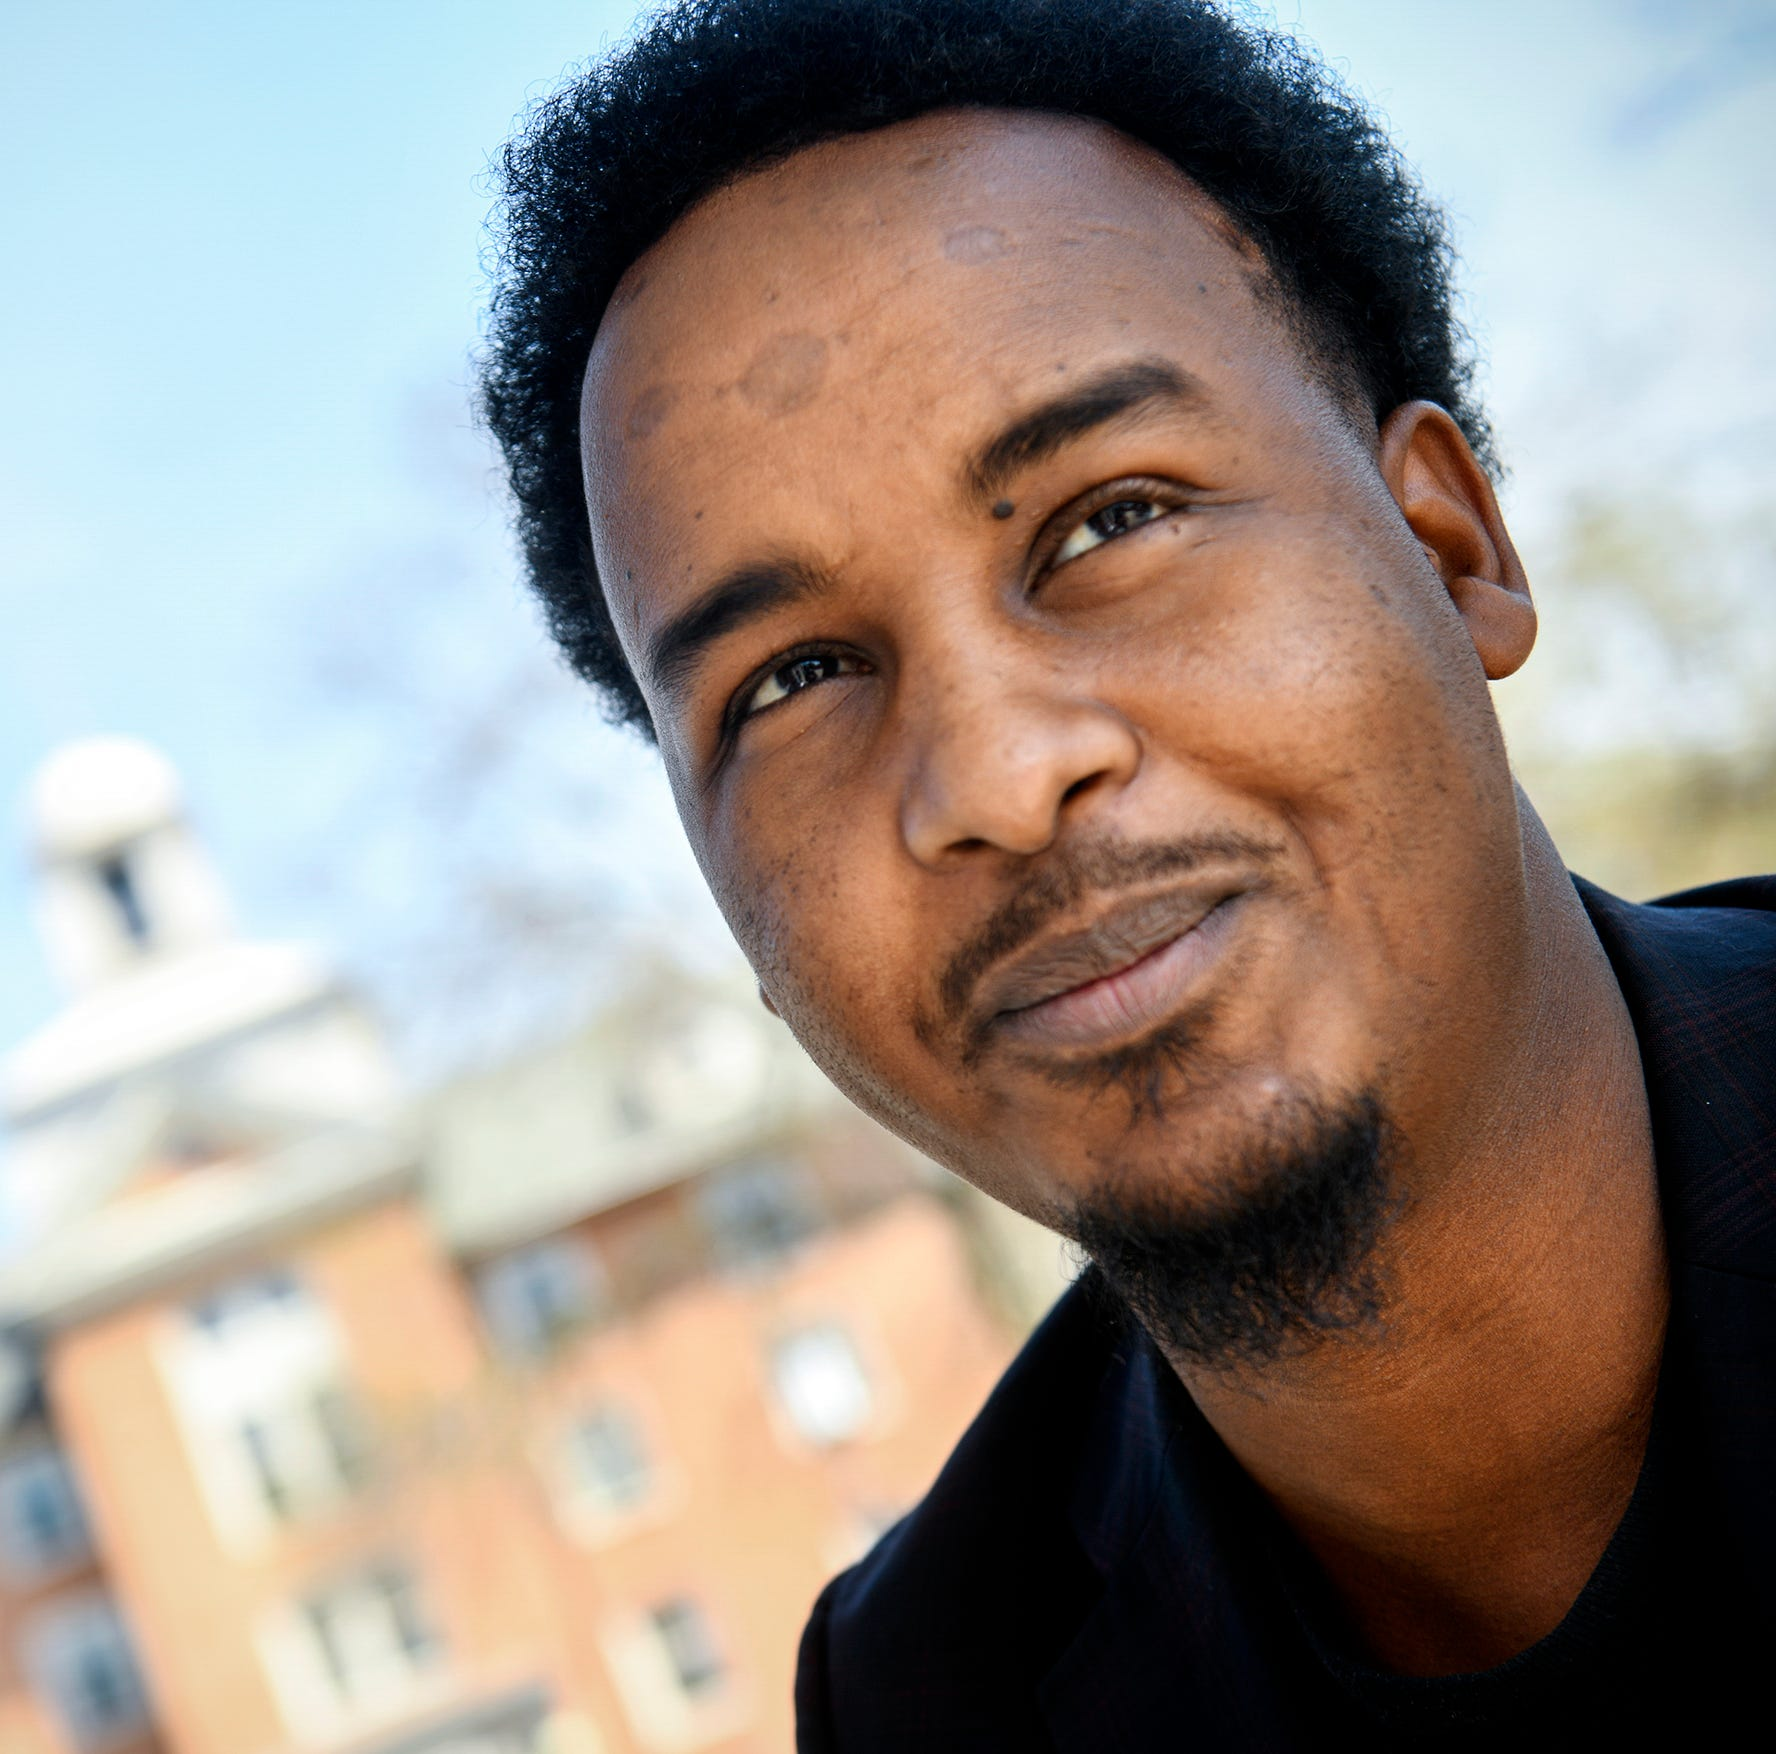 Somali refugee and activist earns St. Cloud State degree this week